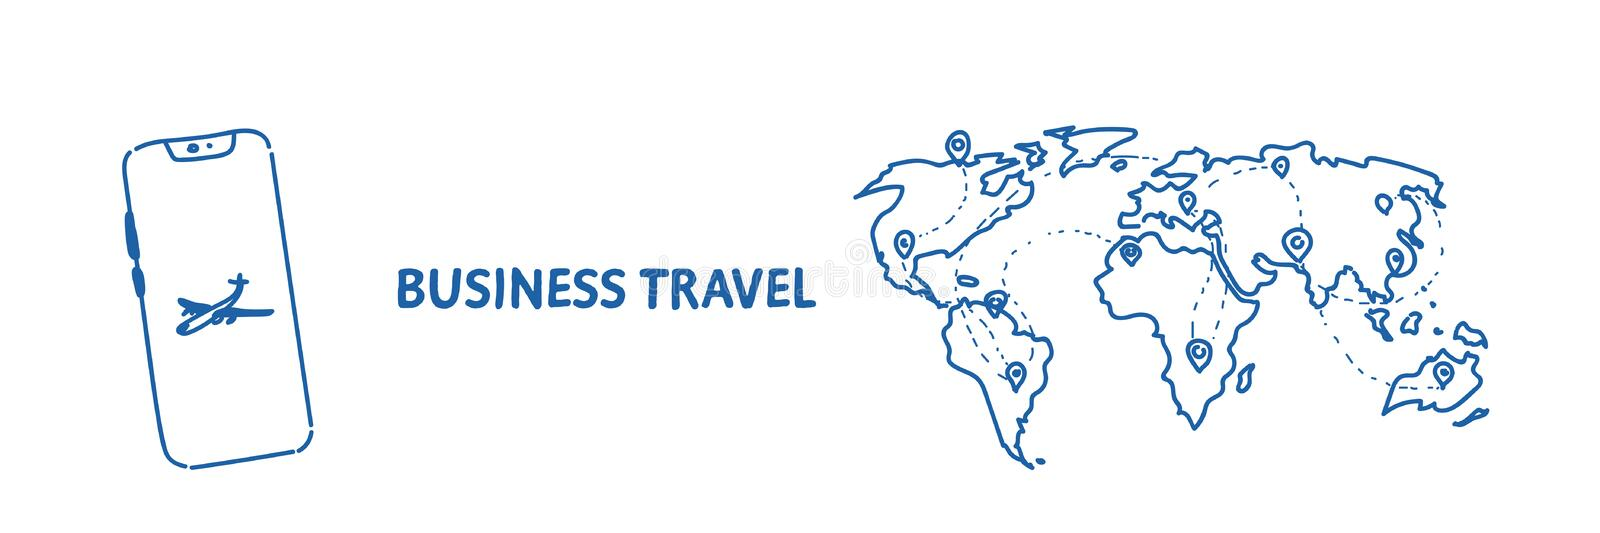 Mobile application business travel concept tourism company agency world map with pins international traveling by plane. Sketch flow style horizontal vector stock illustration